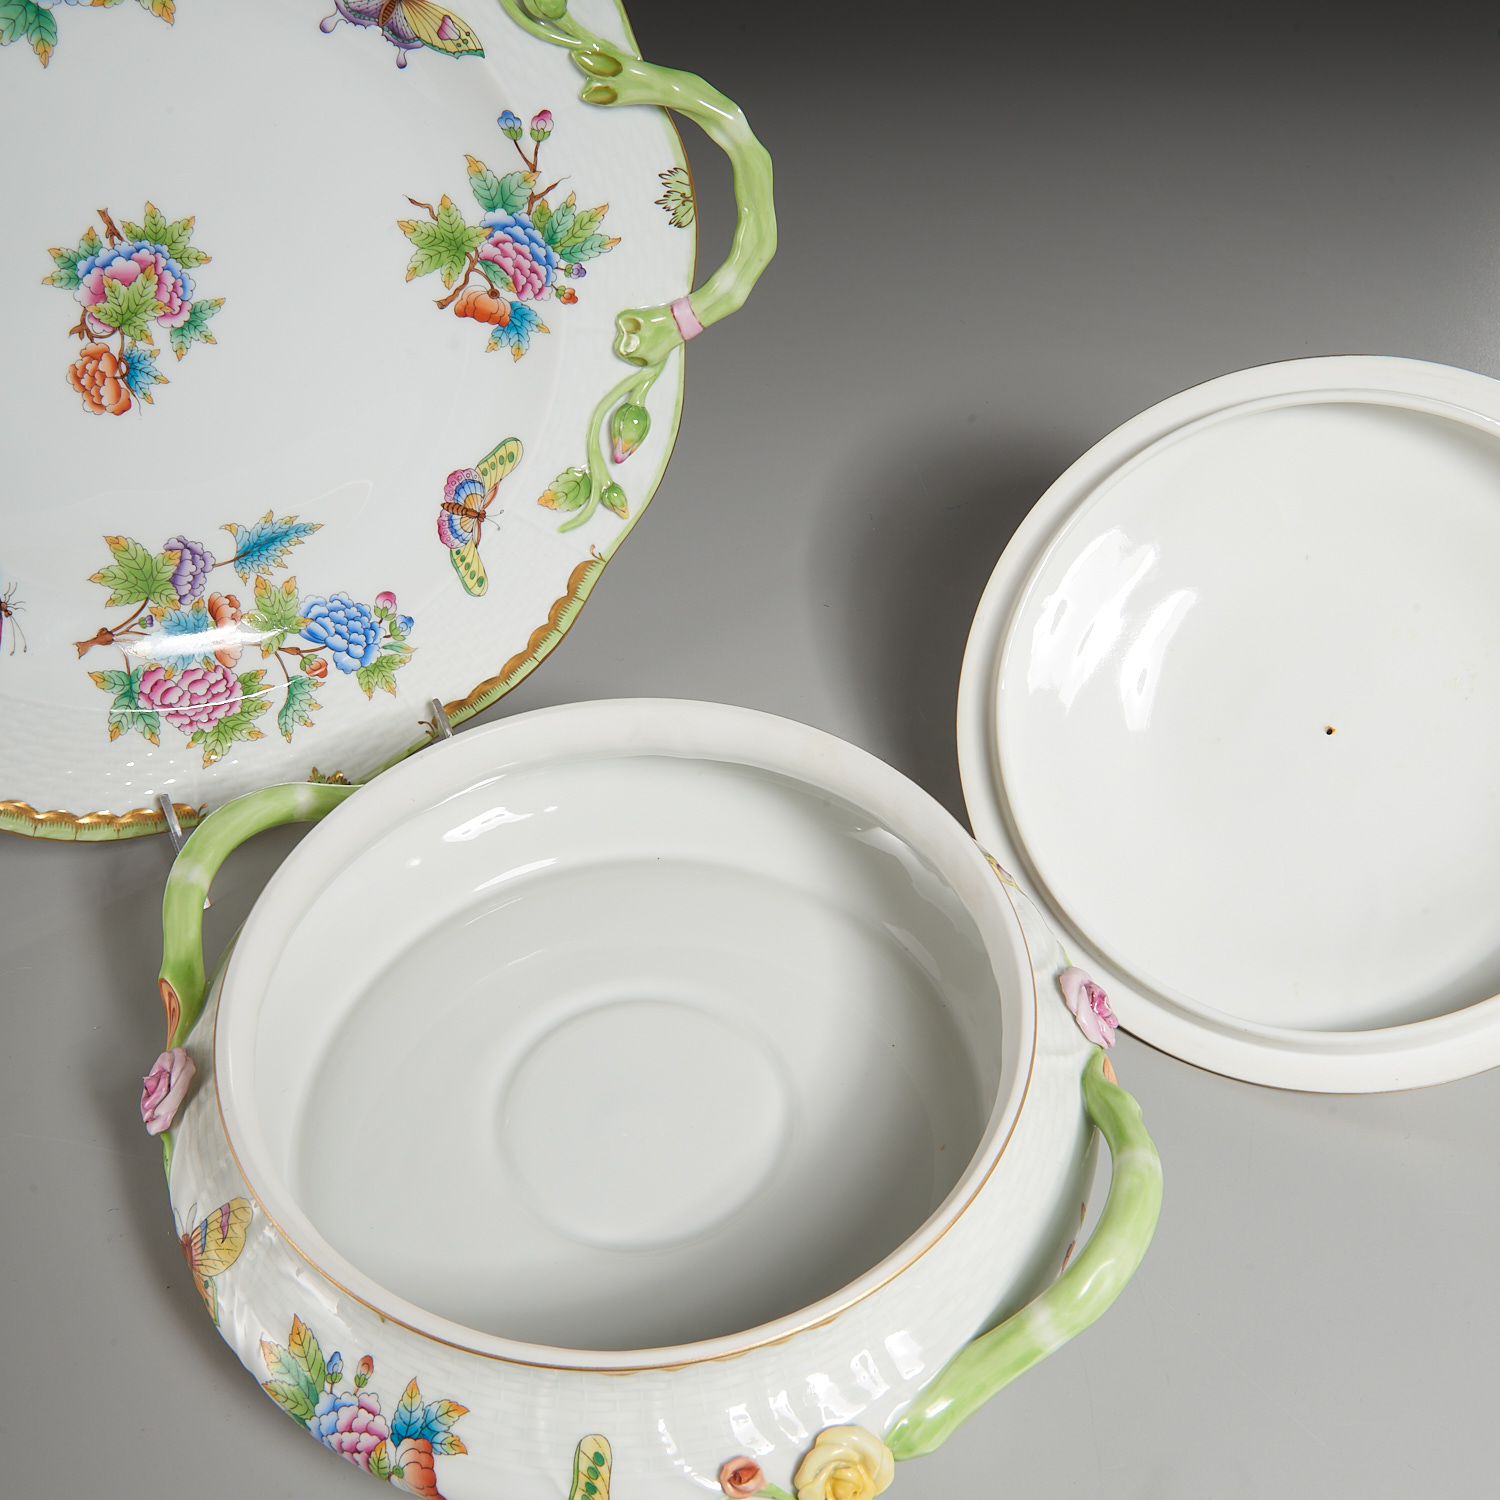 Lot 60 - Herend Porcelain Tureen and Platter